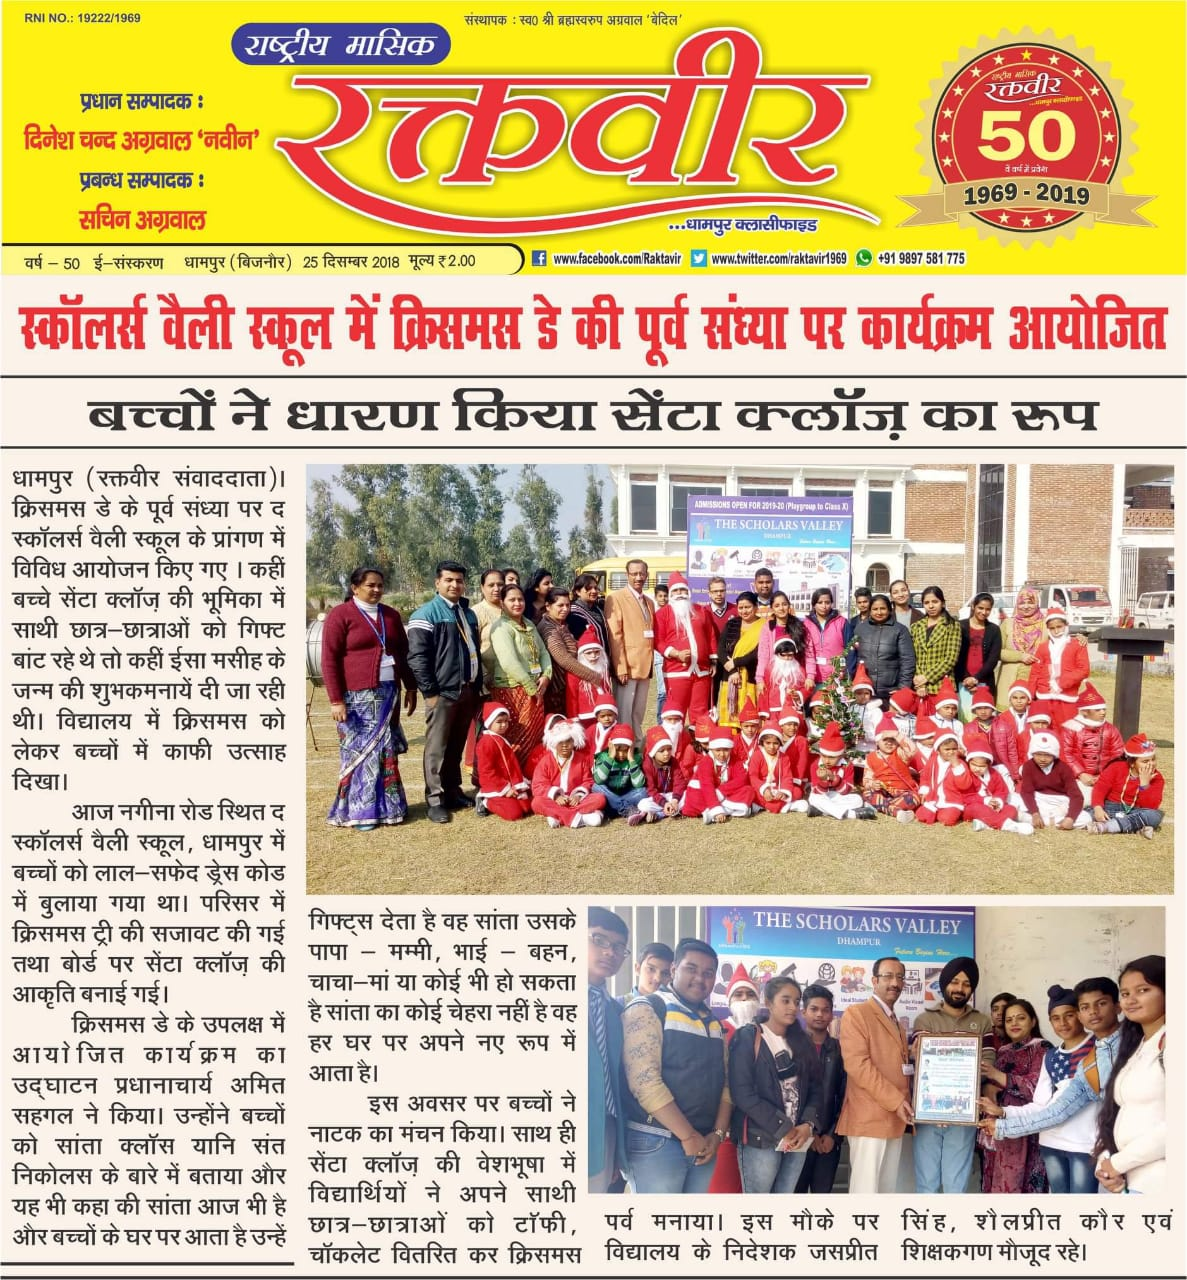 Raktveer Newspaper - (25.12.18)